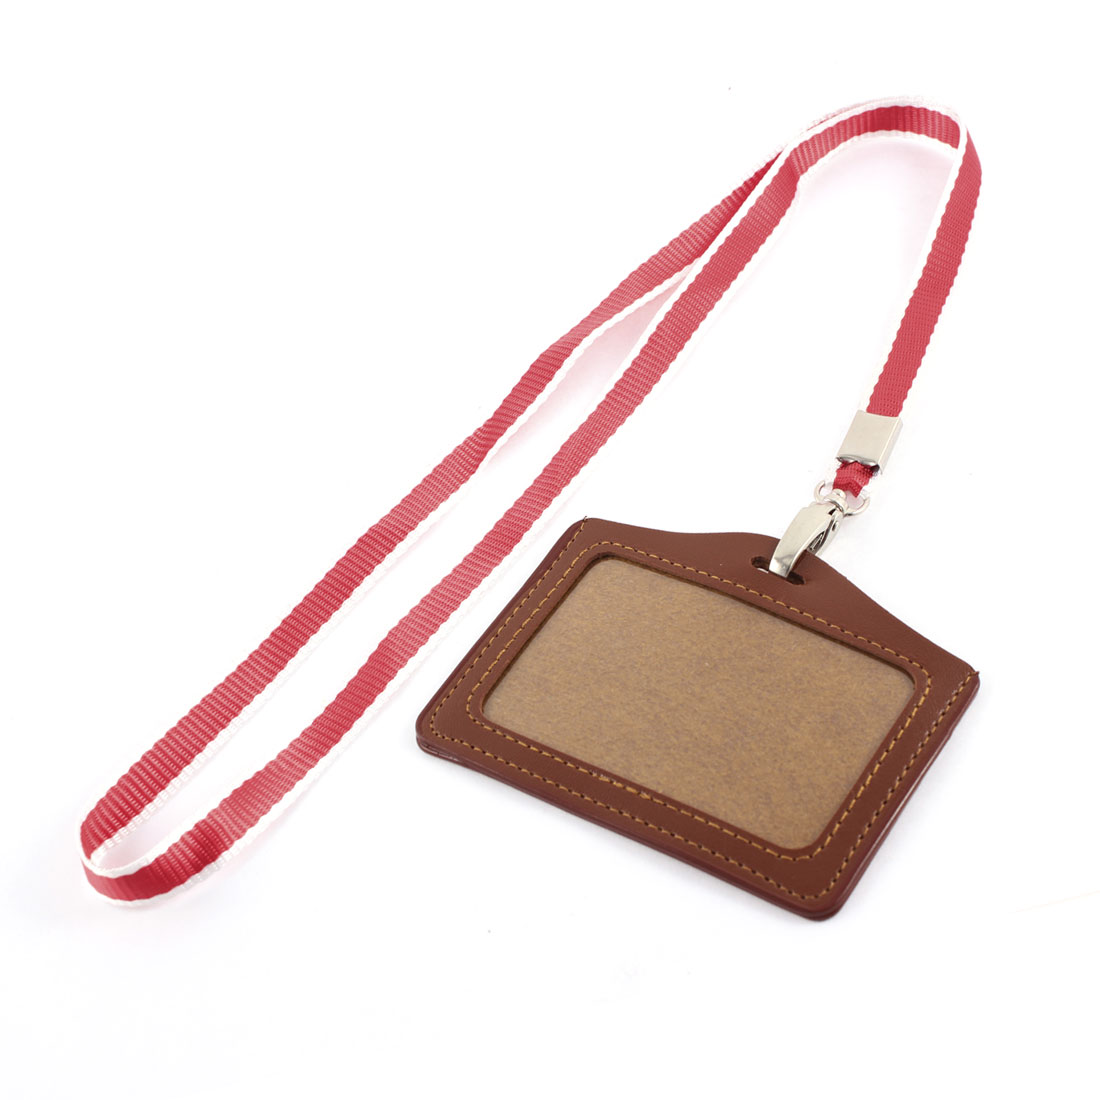 Faux Leather Horizontal Work School ID Card Badge Holder Brown w Red Neck Strap